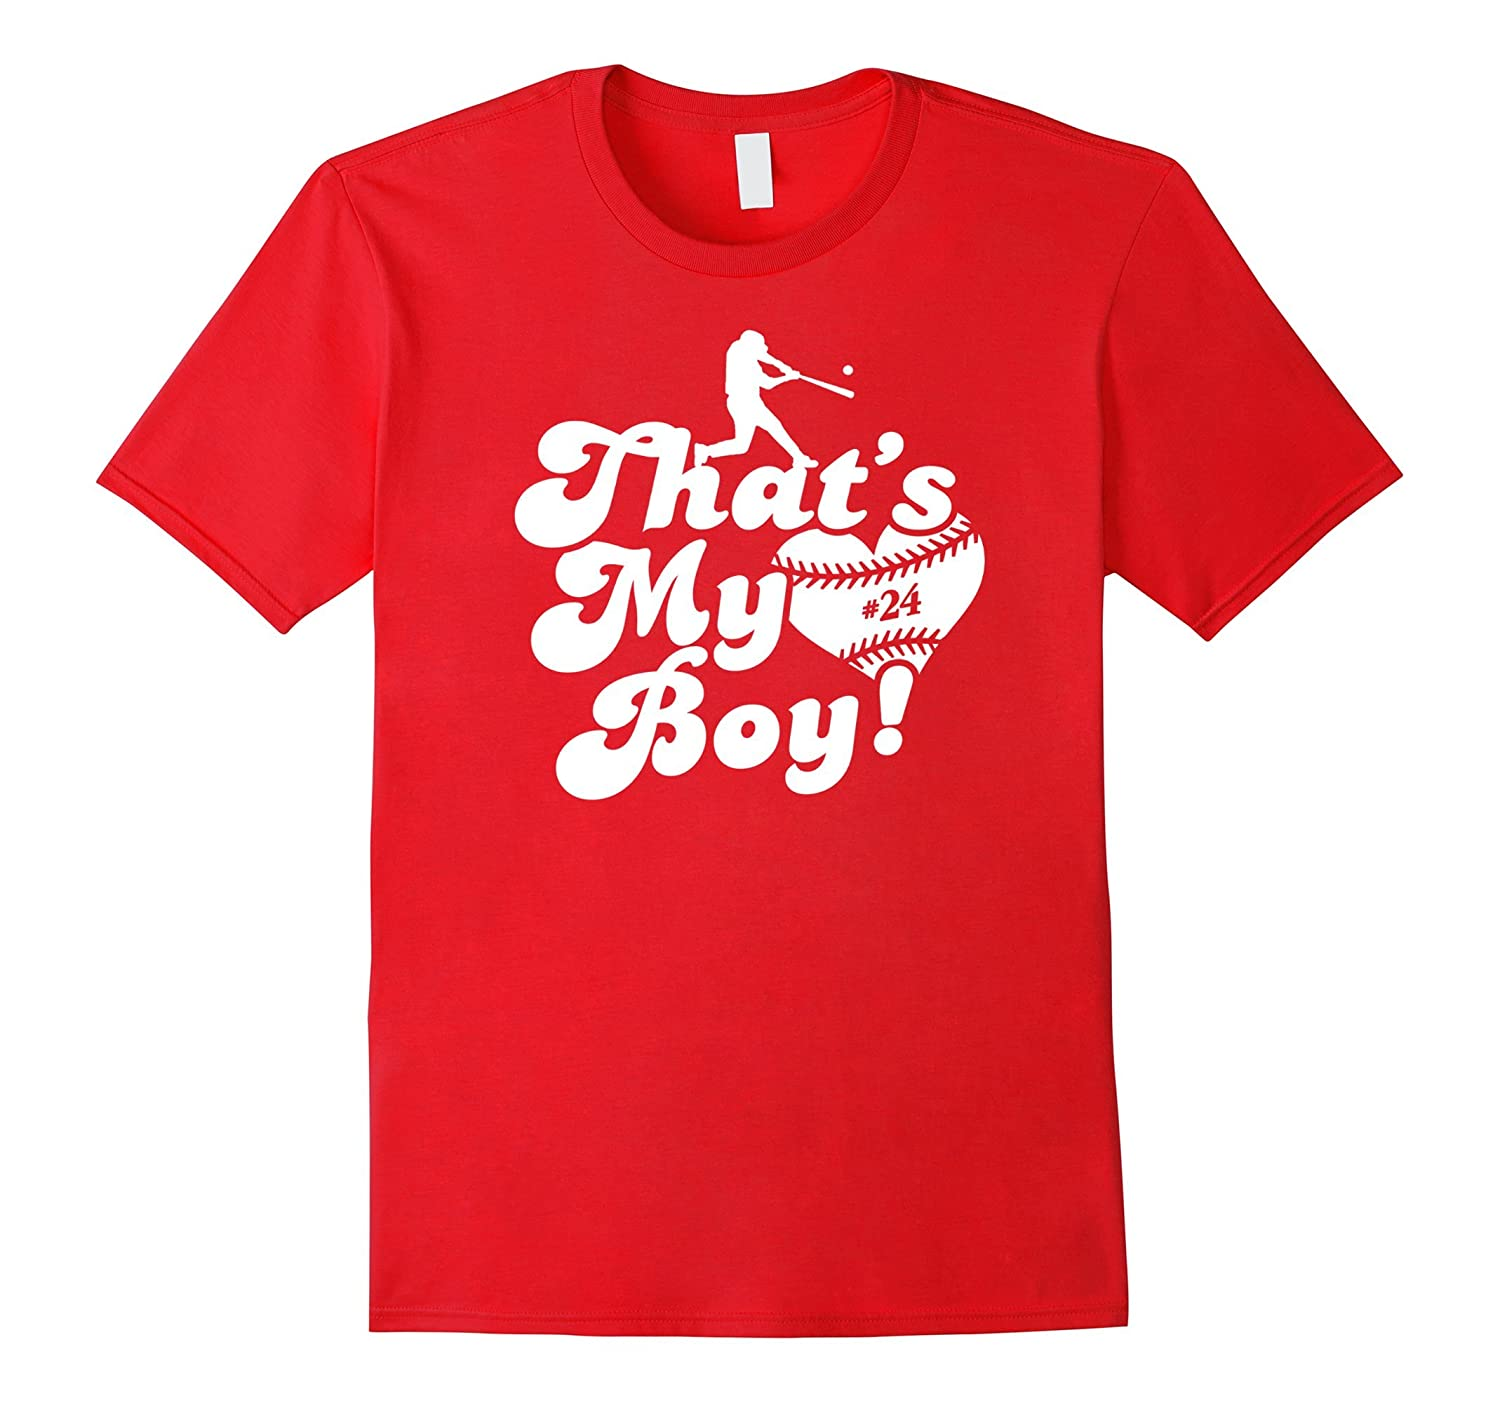 Vintage Thats My Boy 24 Baseball Mom Dad T-shirt-PL